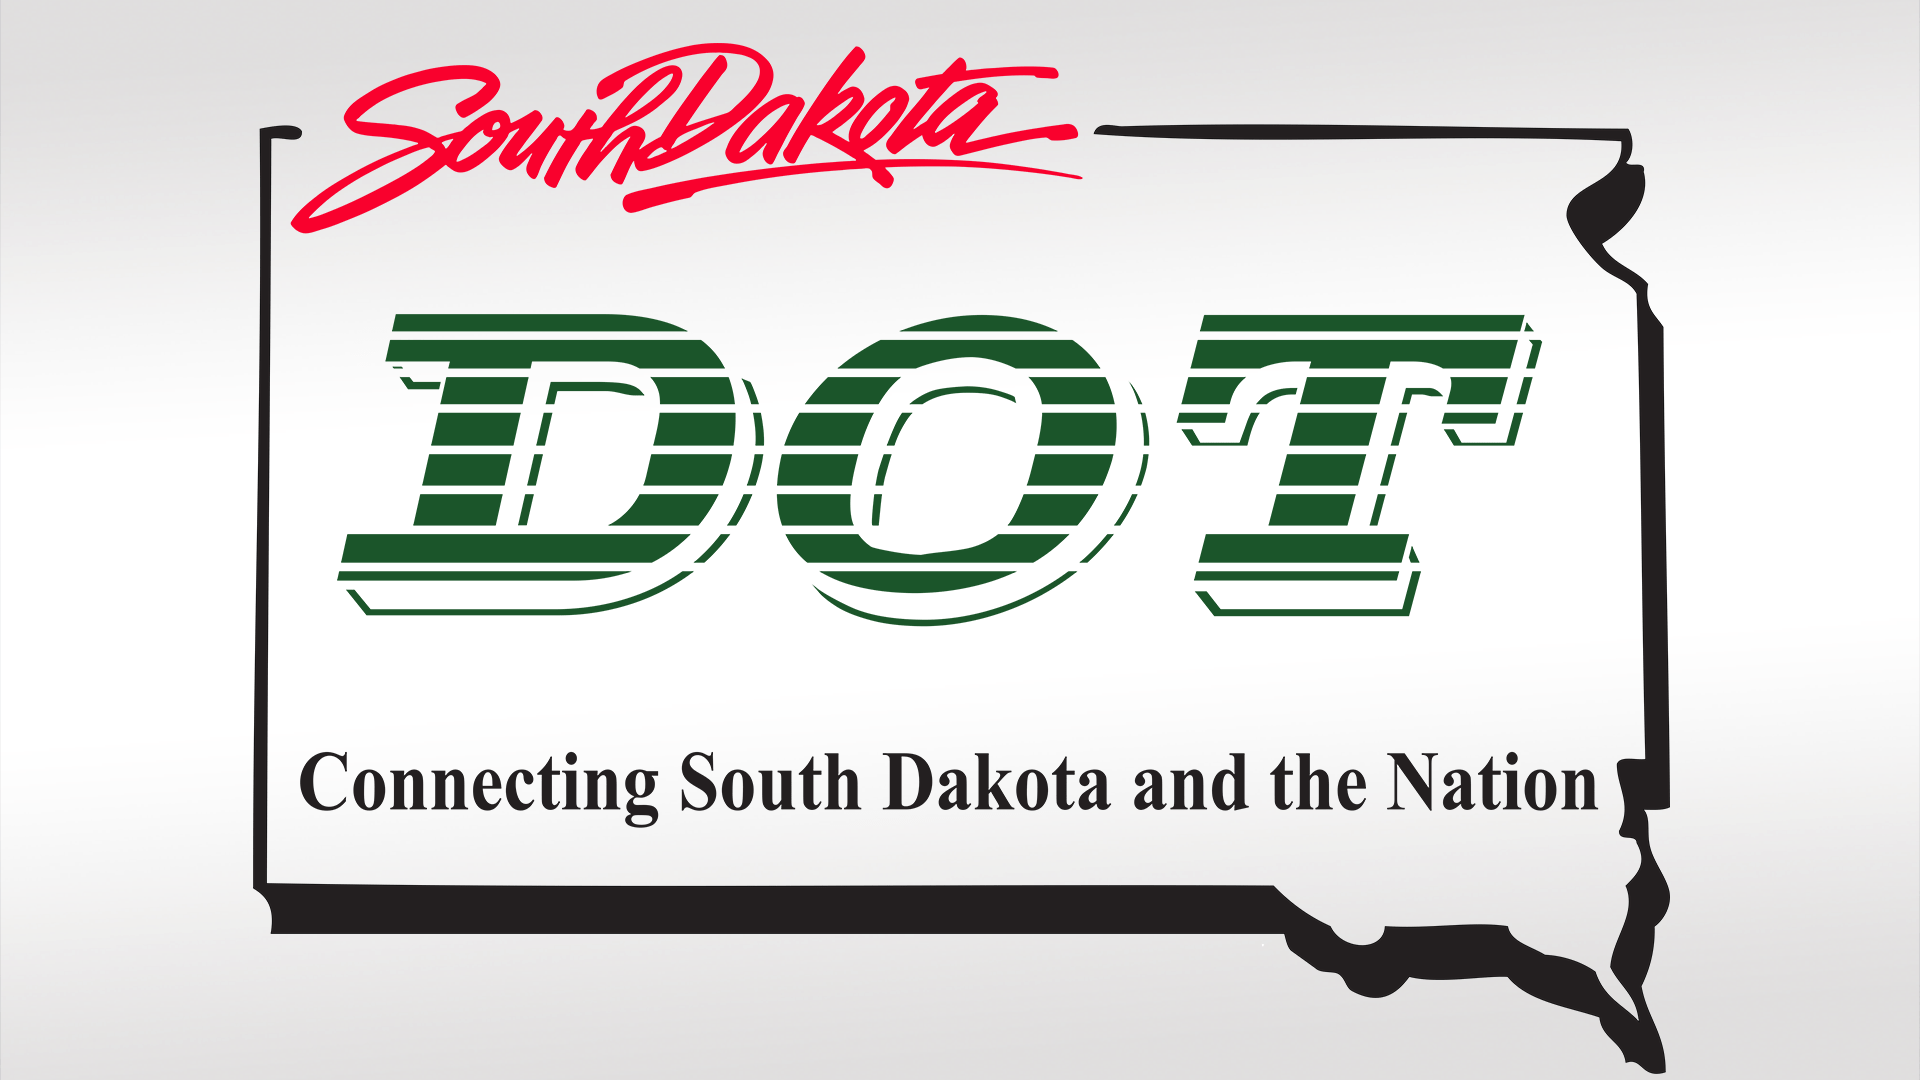 KELO South Dakota Department of Transportation SDDOT logo